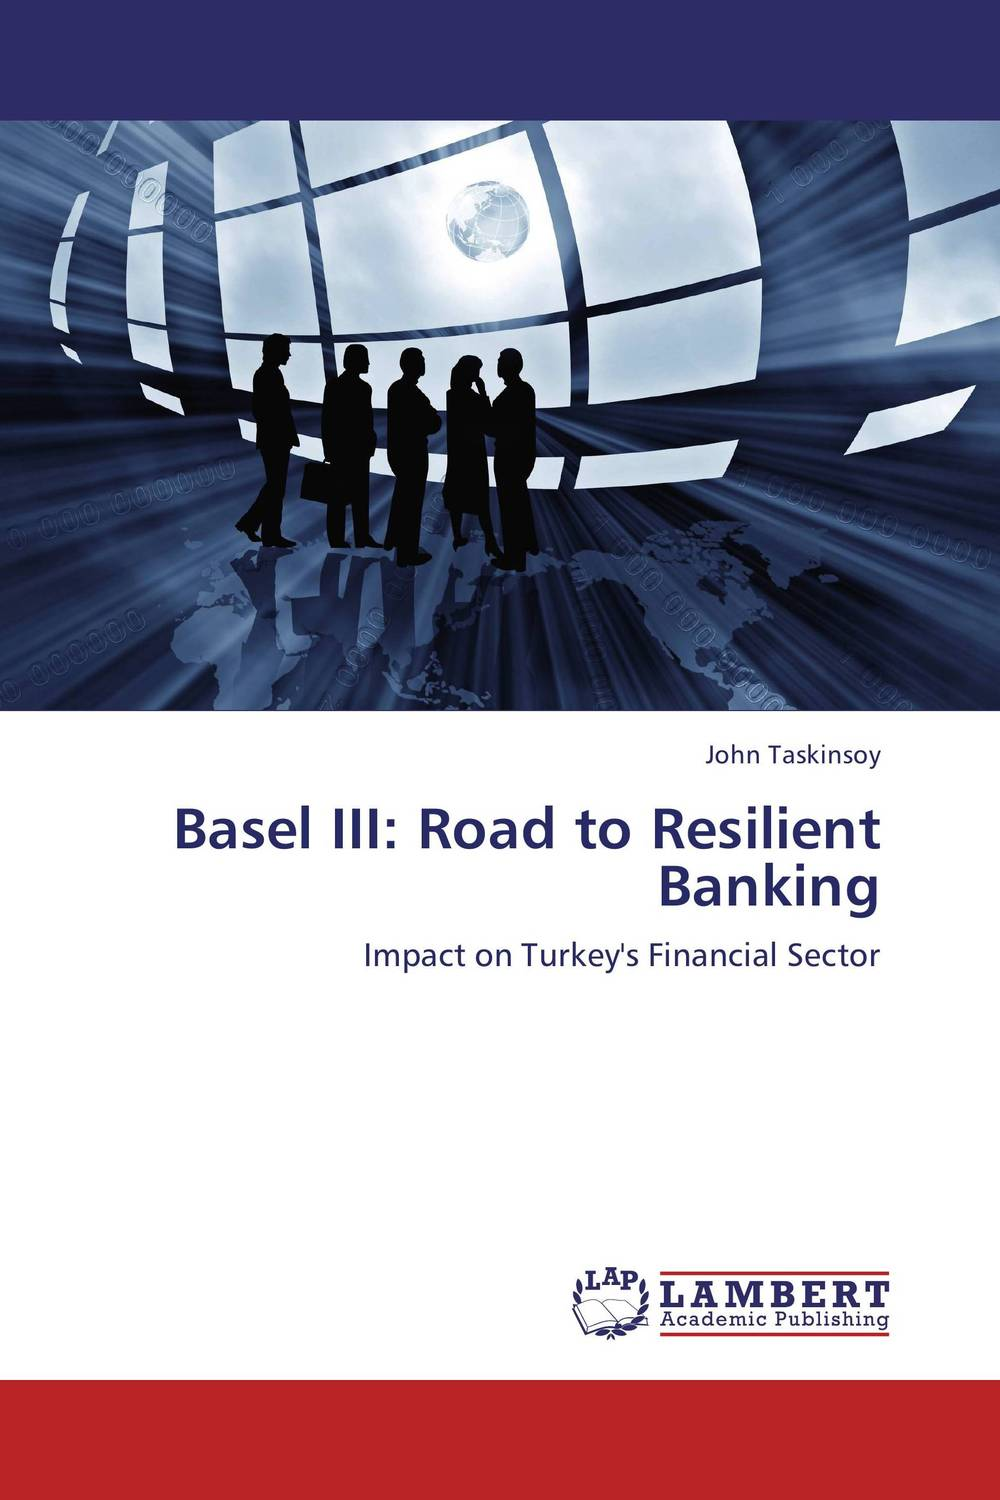 Basel III: Road to Resilient Banking